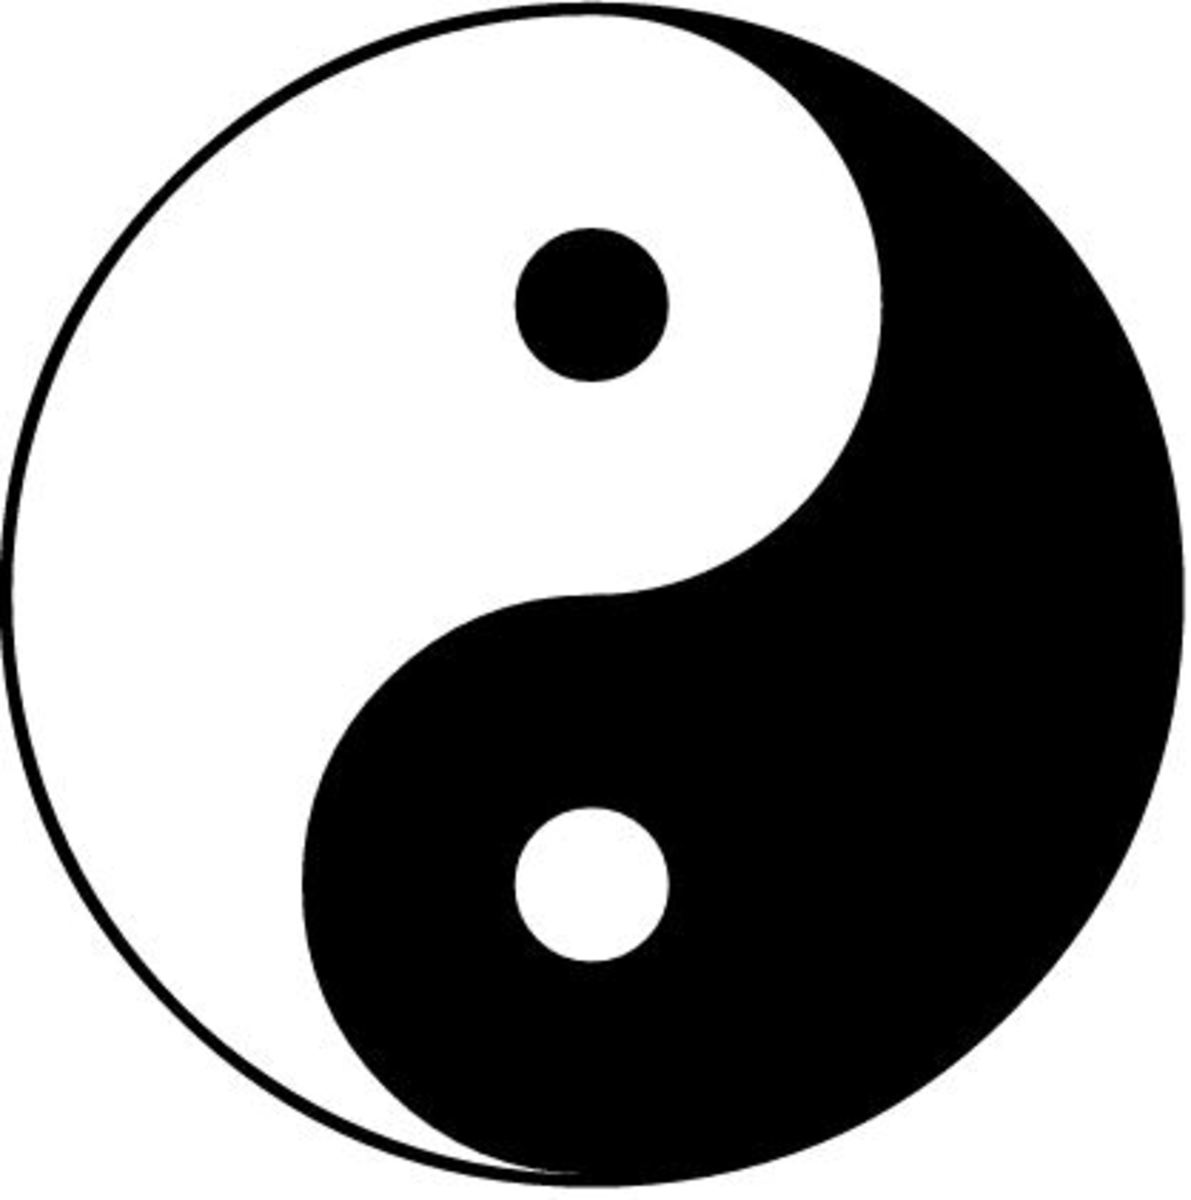 Yin and yang symbol for balance. In Traditional Chinese Medicine, good health is believed to be achieved by a balance between yin and yang.